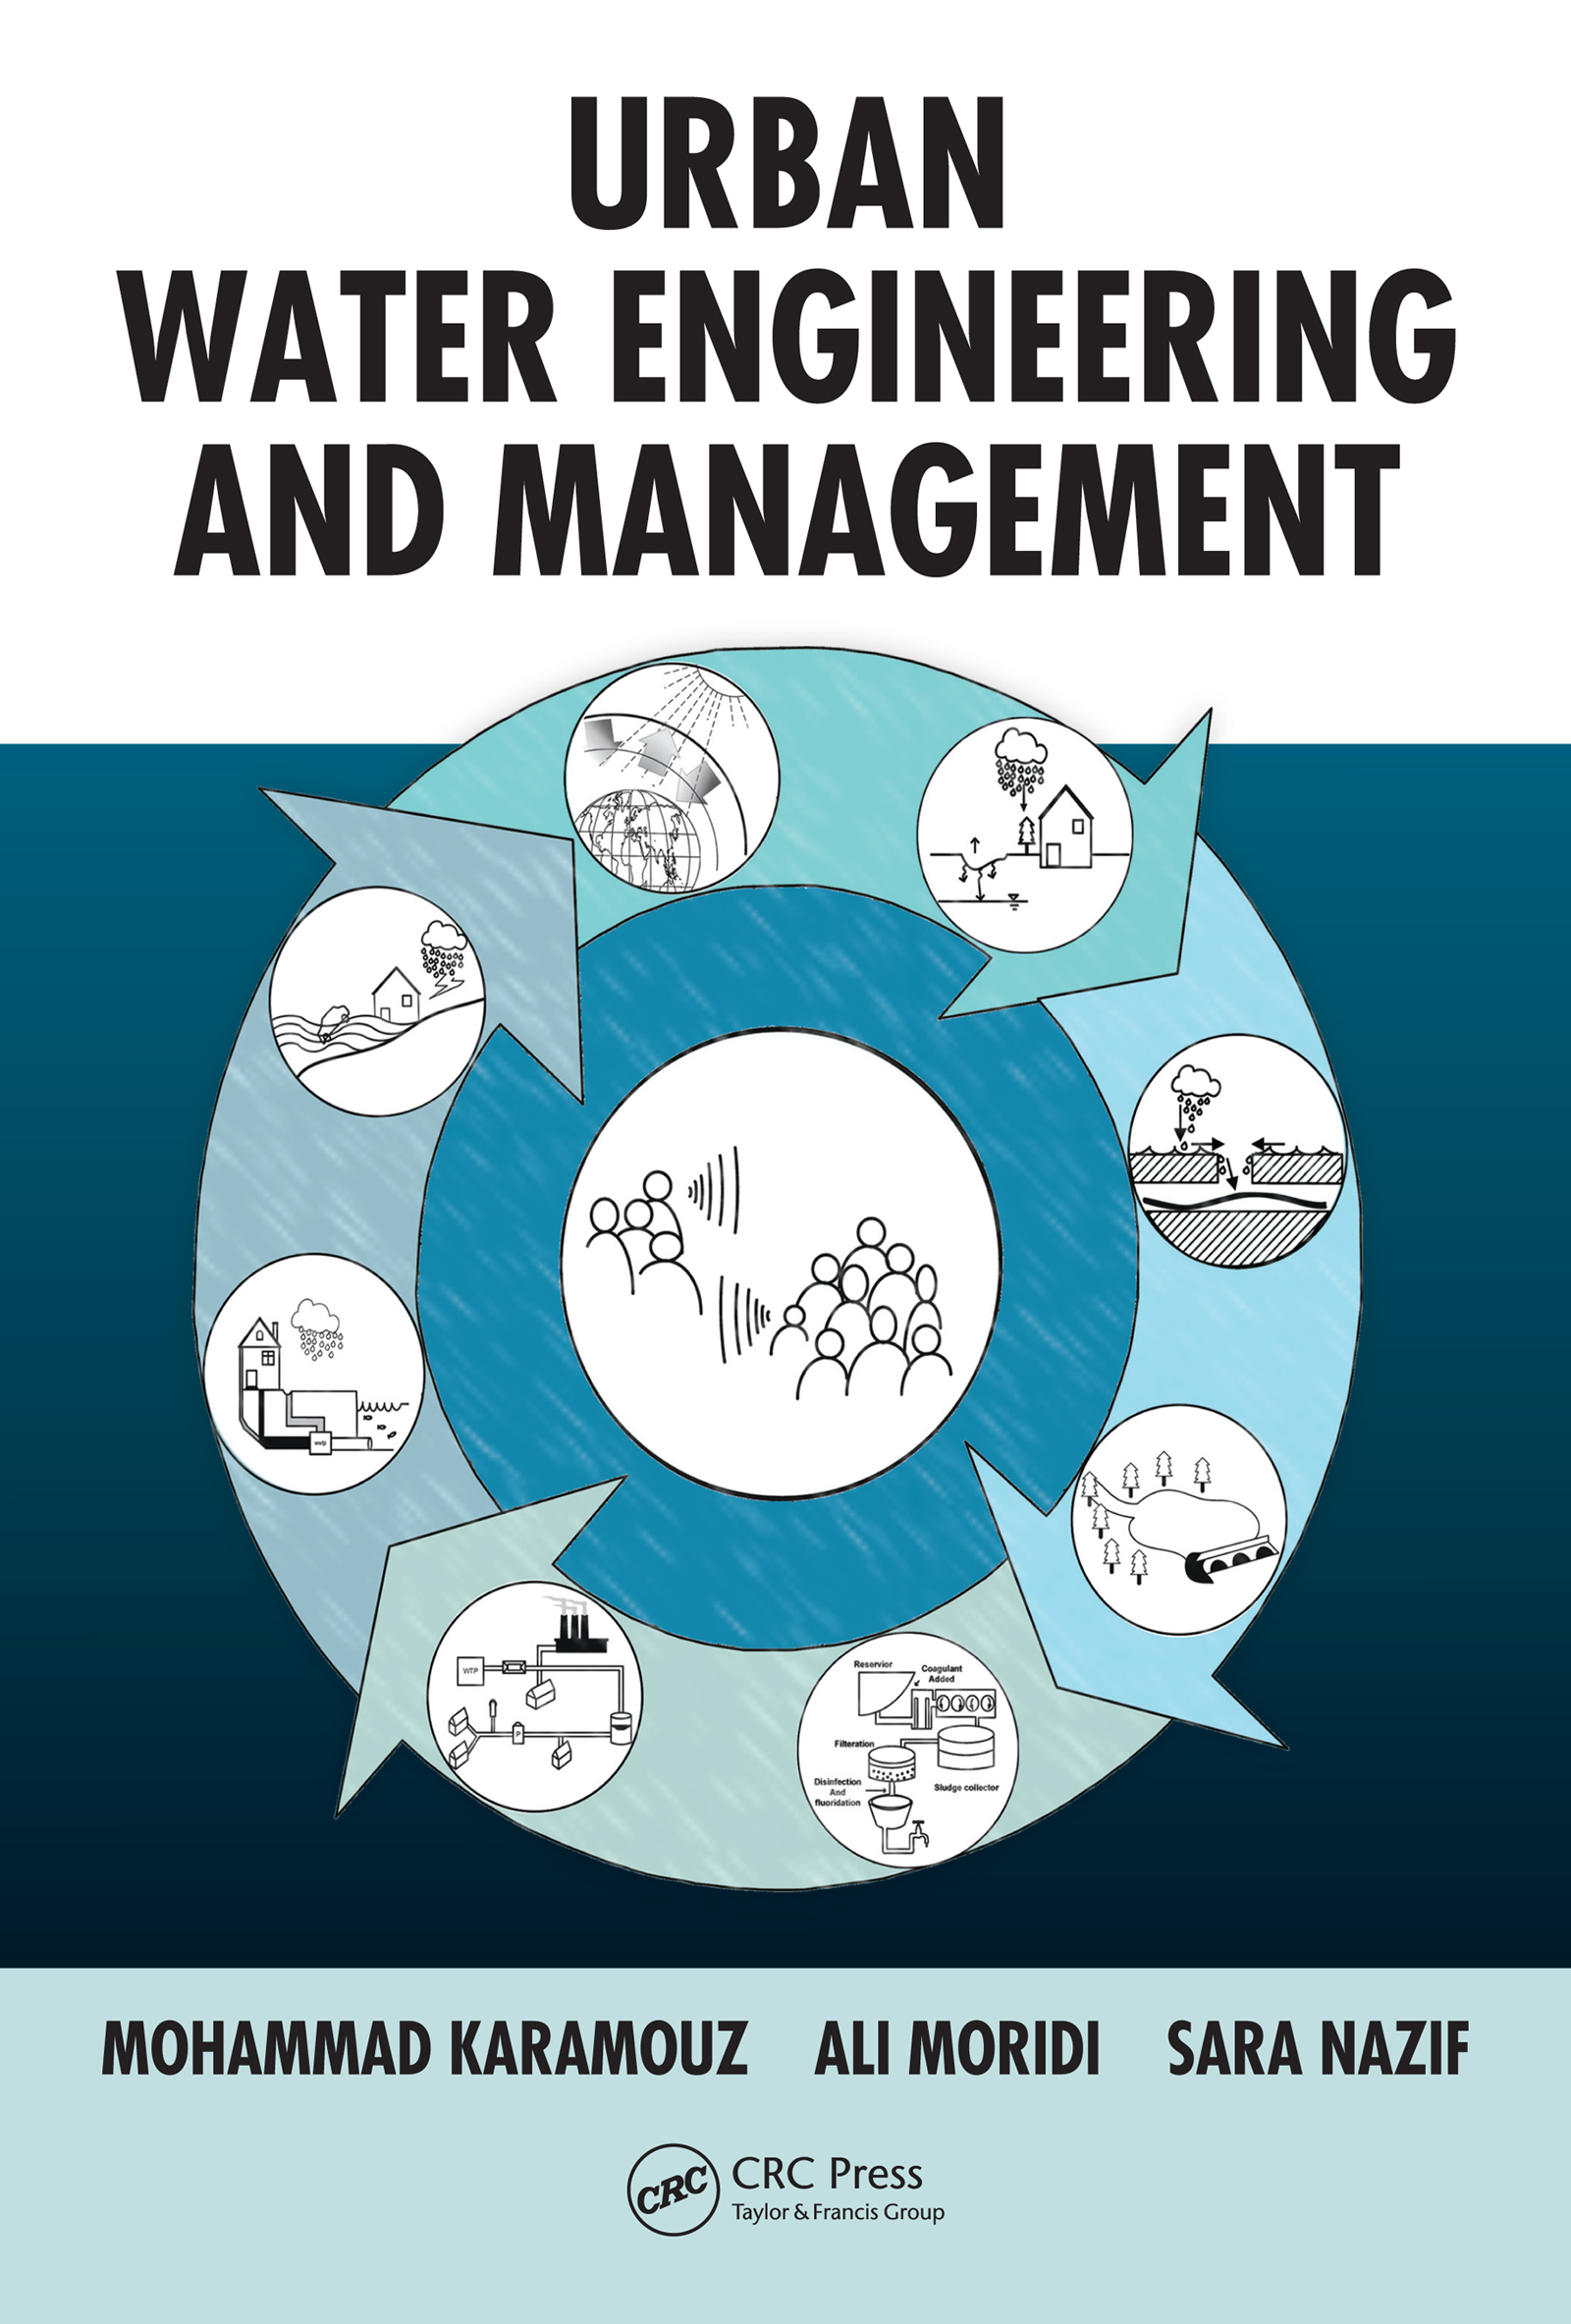 Download Ebook Urban Water Engineering and Management by Mohammad Karamouz Pdf